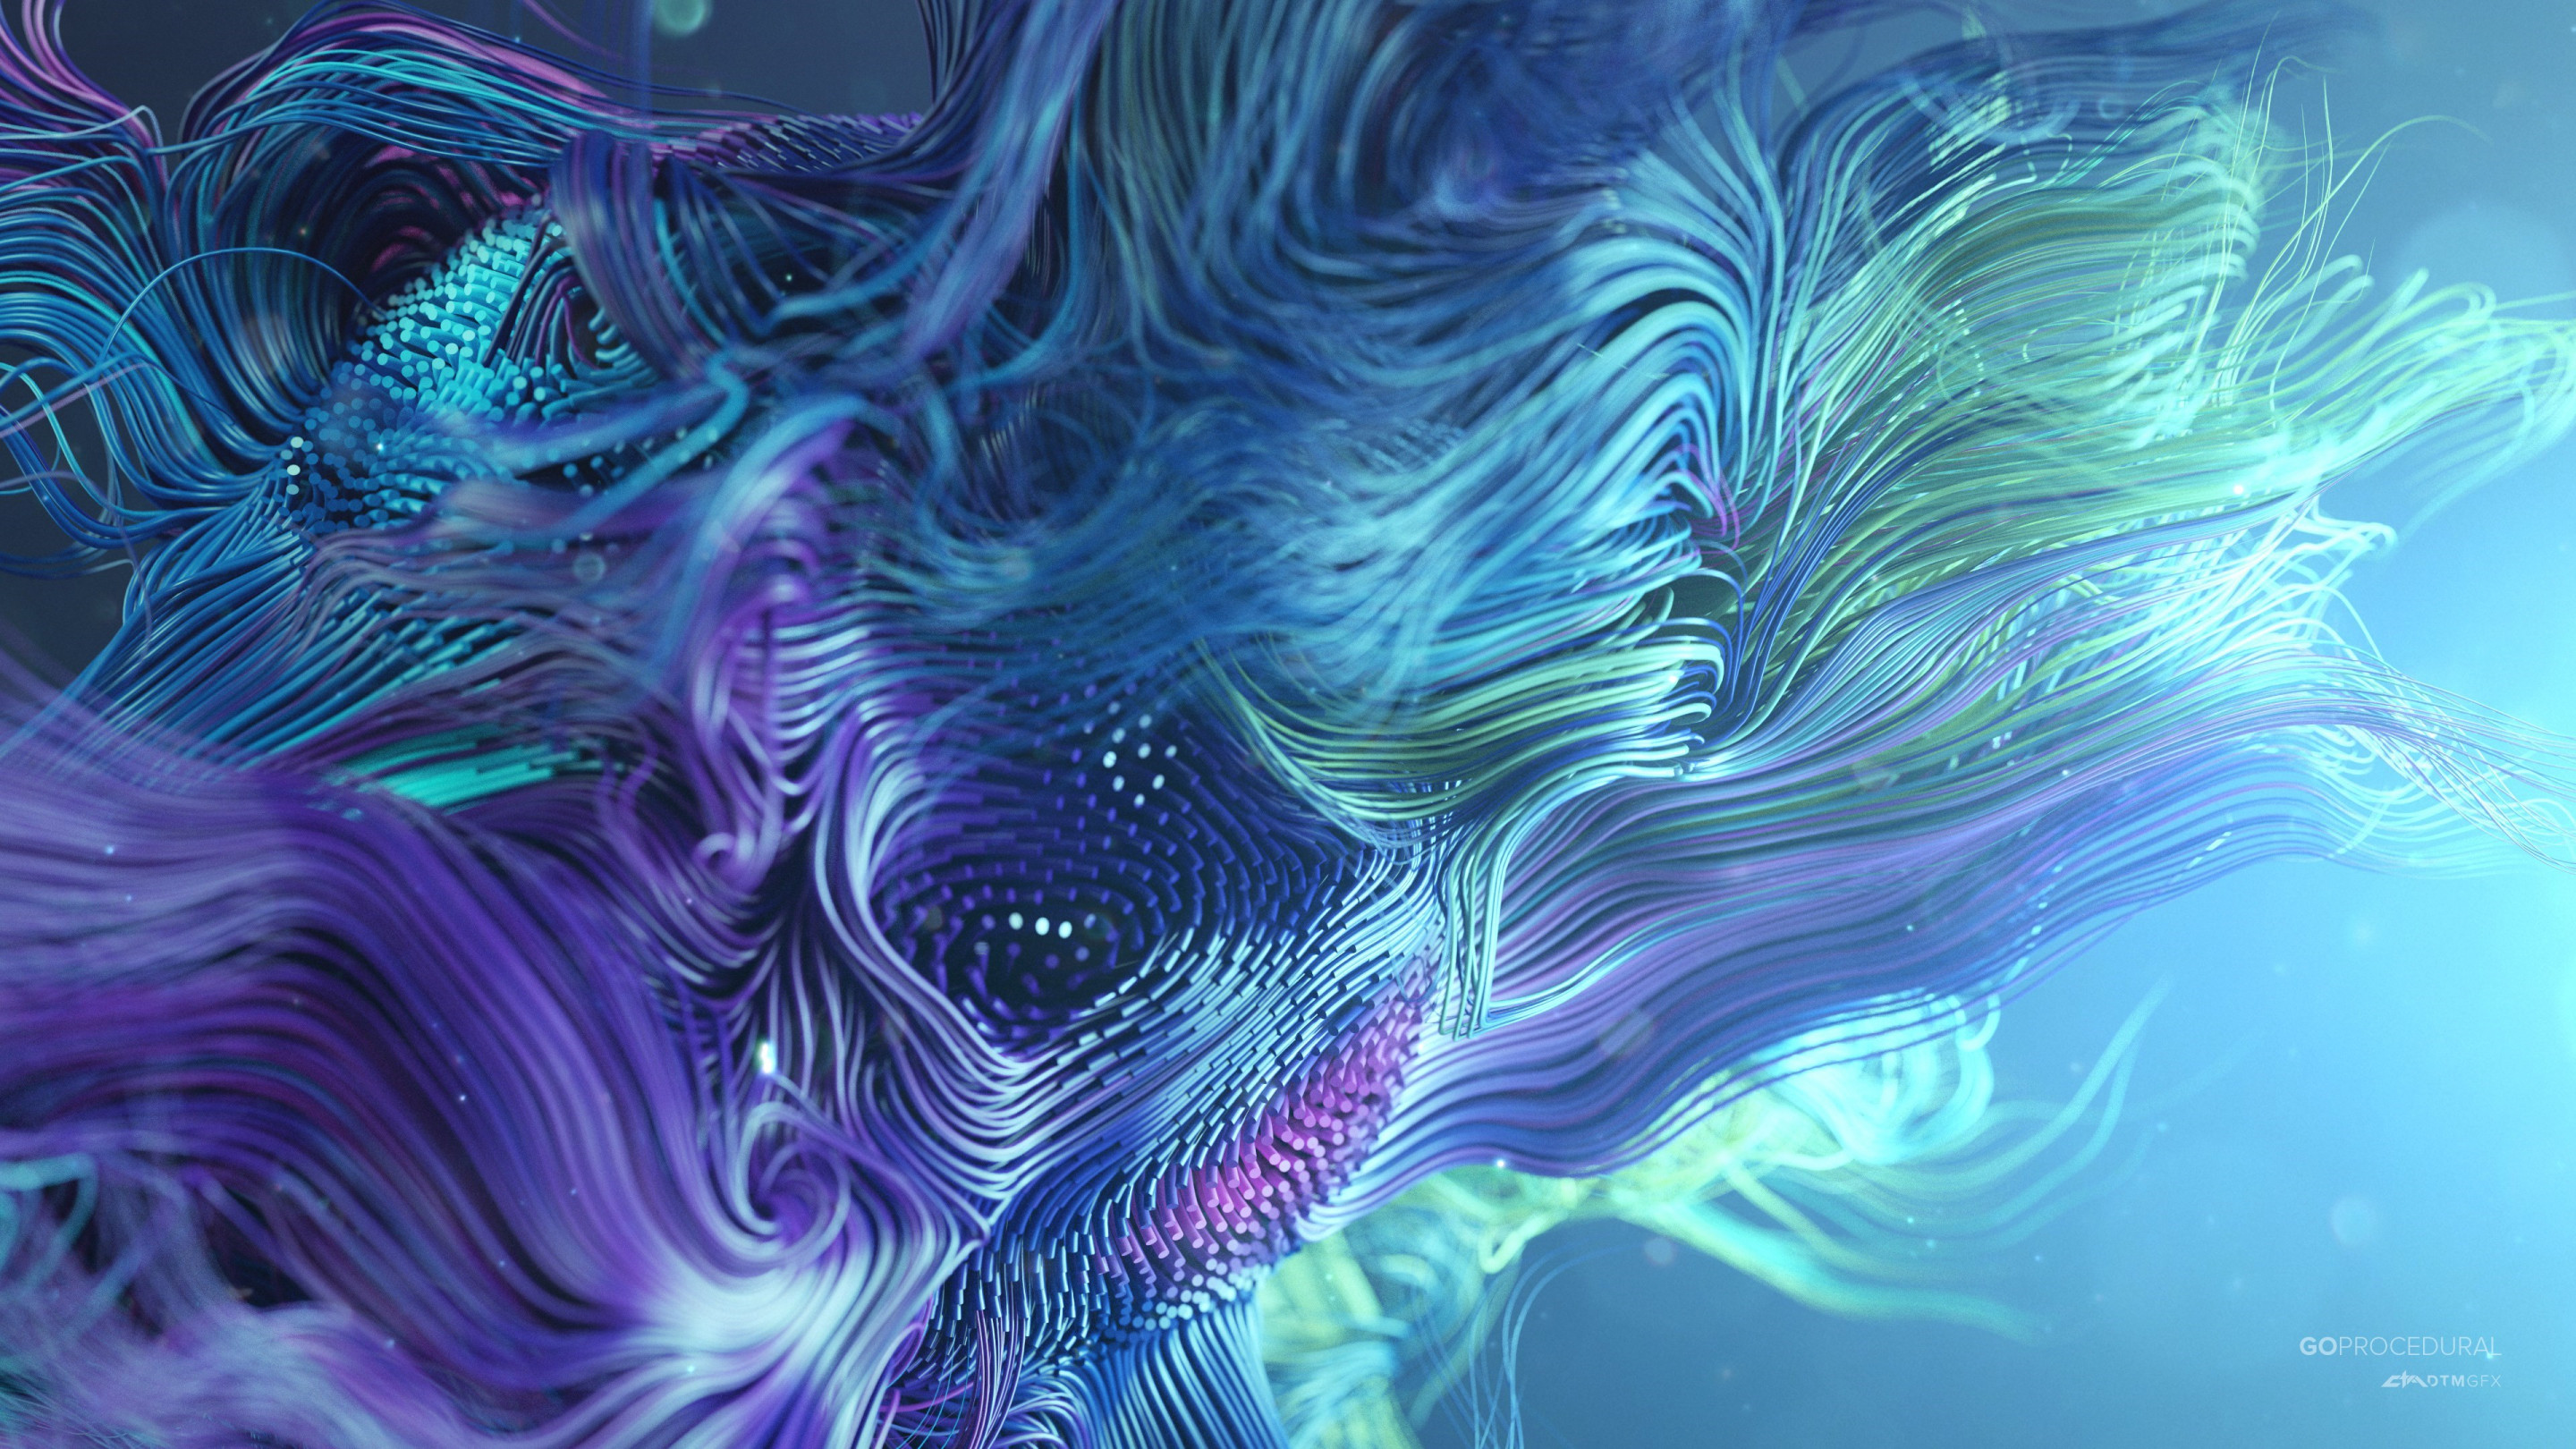 Abstract work wallpaper 2880x1620